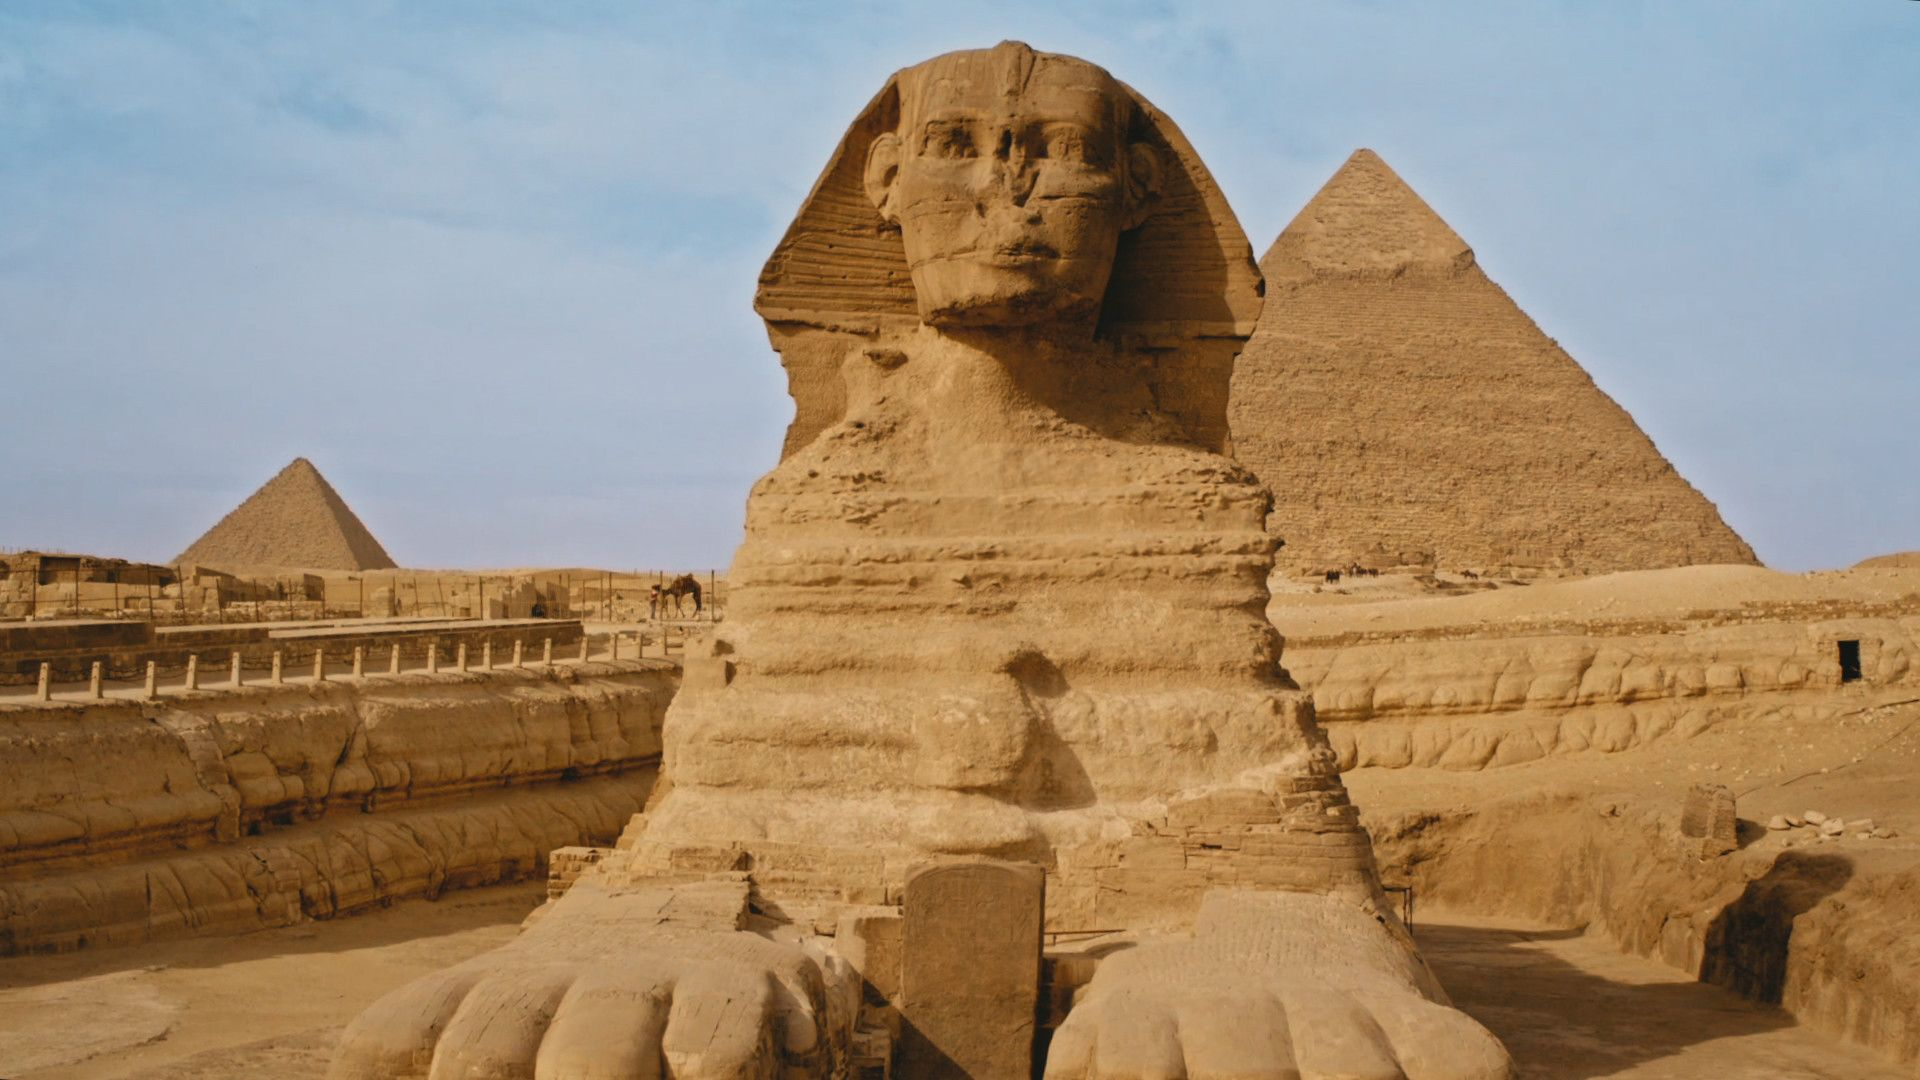 Great Sphinx of Giza. This is from Lost Treasures of Egypt, season 3. [Photo of the day - September 2021]